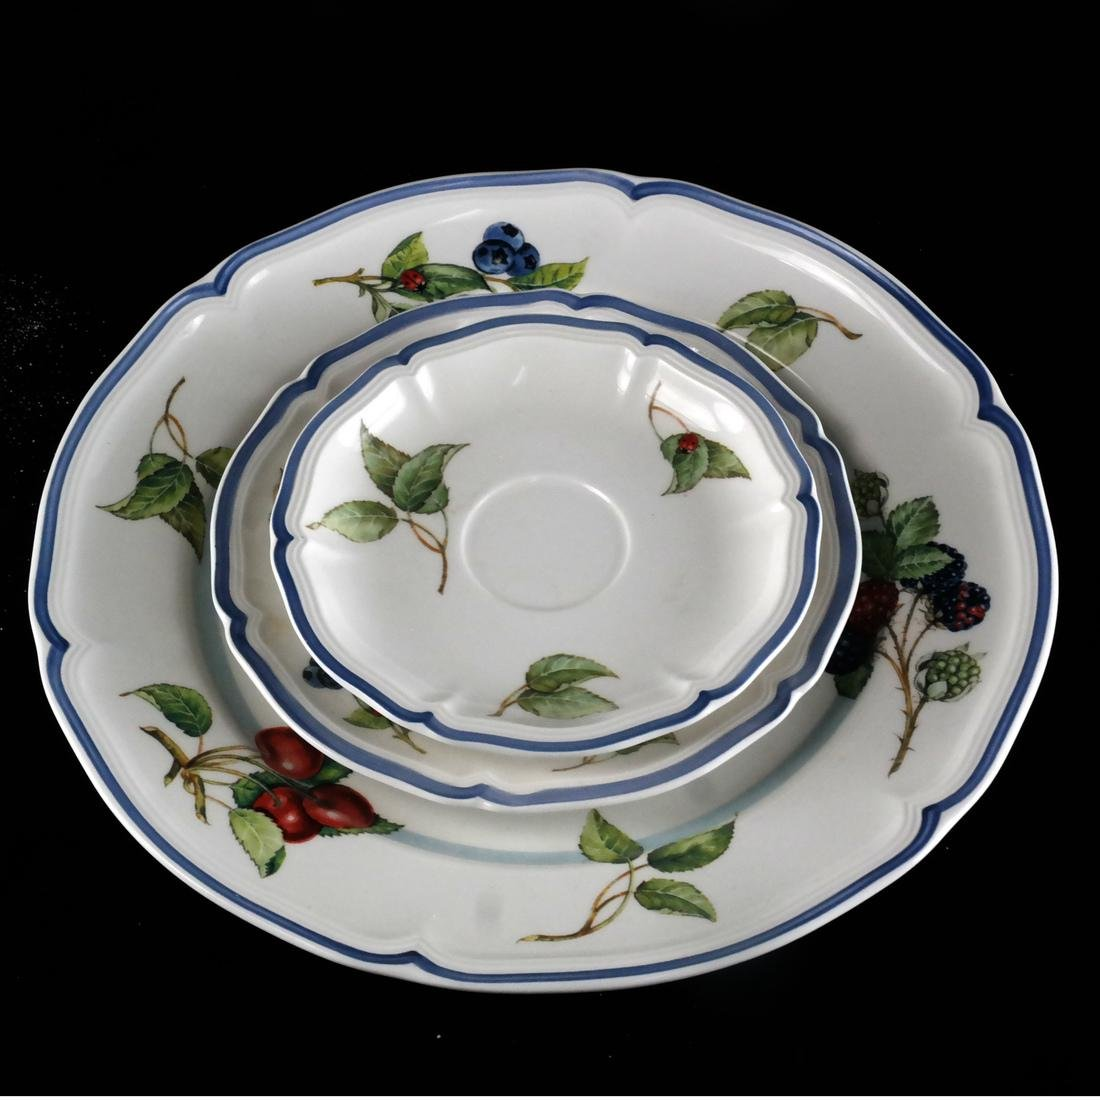 Villery and Boch, Germany: Partial Dinnerware - 7